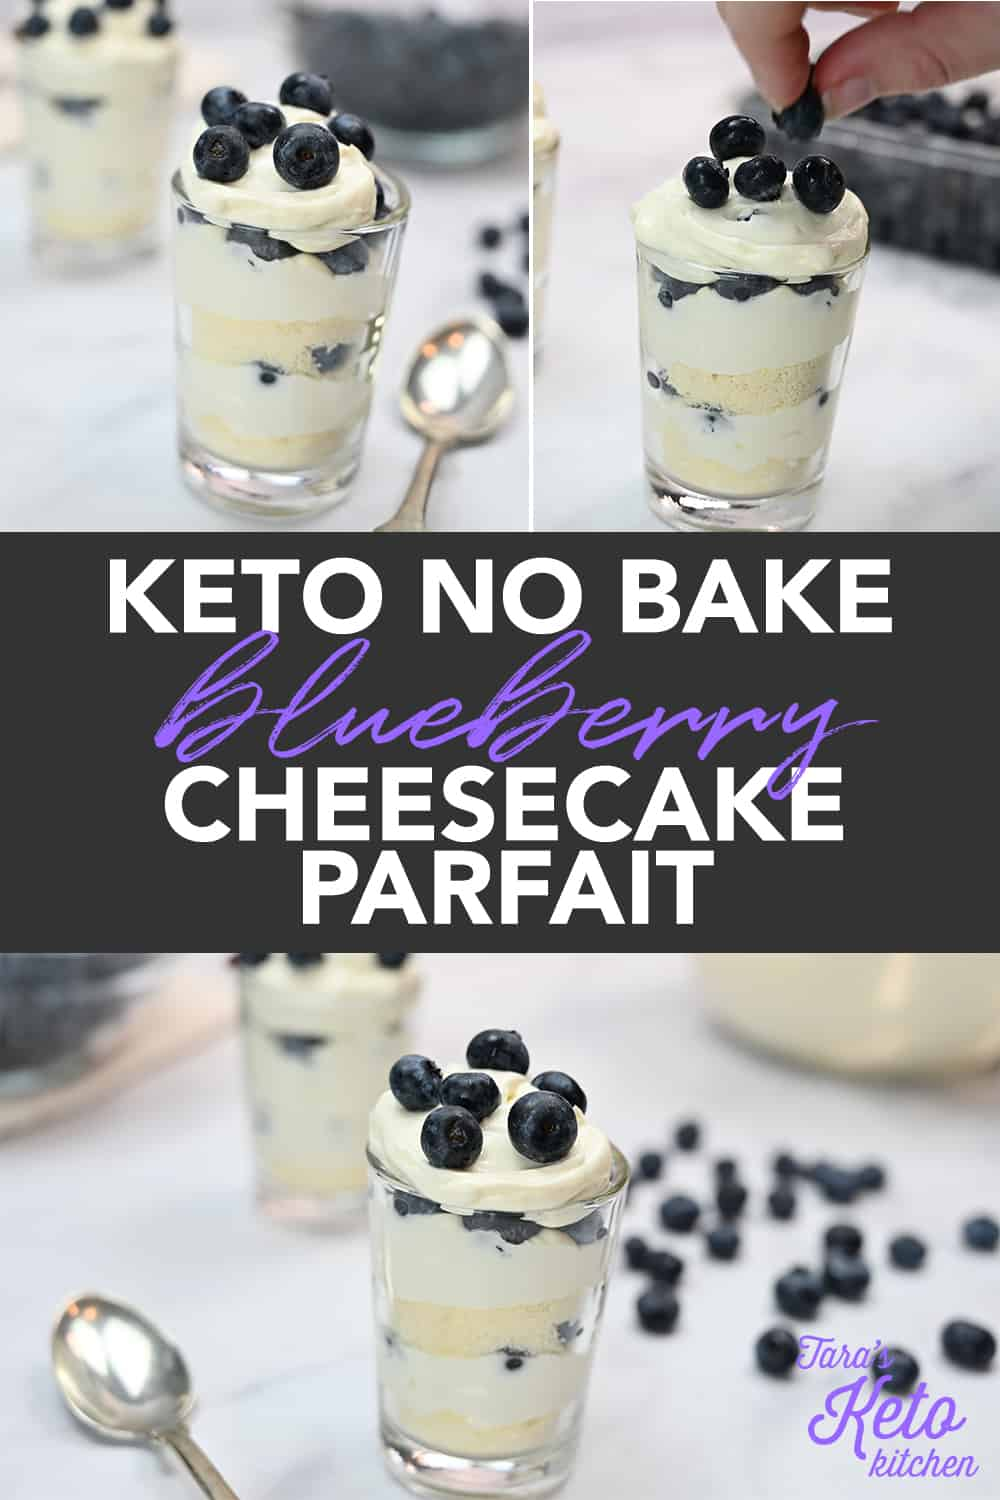 Keto No Bake Blueberry Cheesecake Parfait served in a glass with fresh blueberries